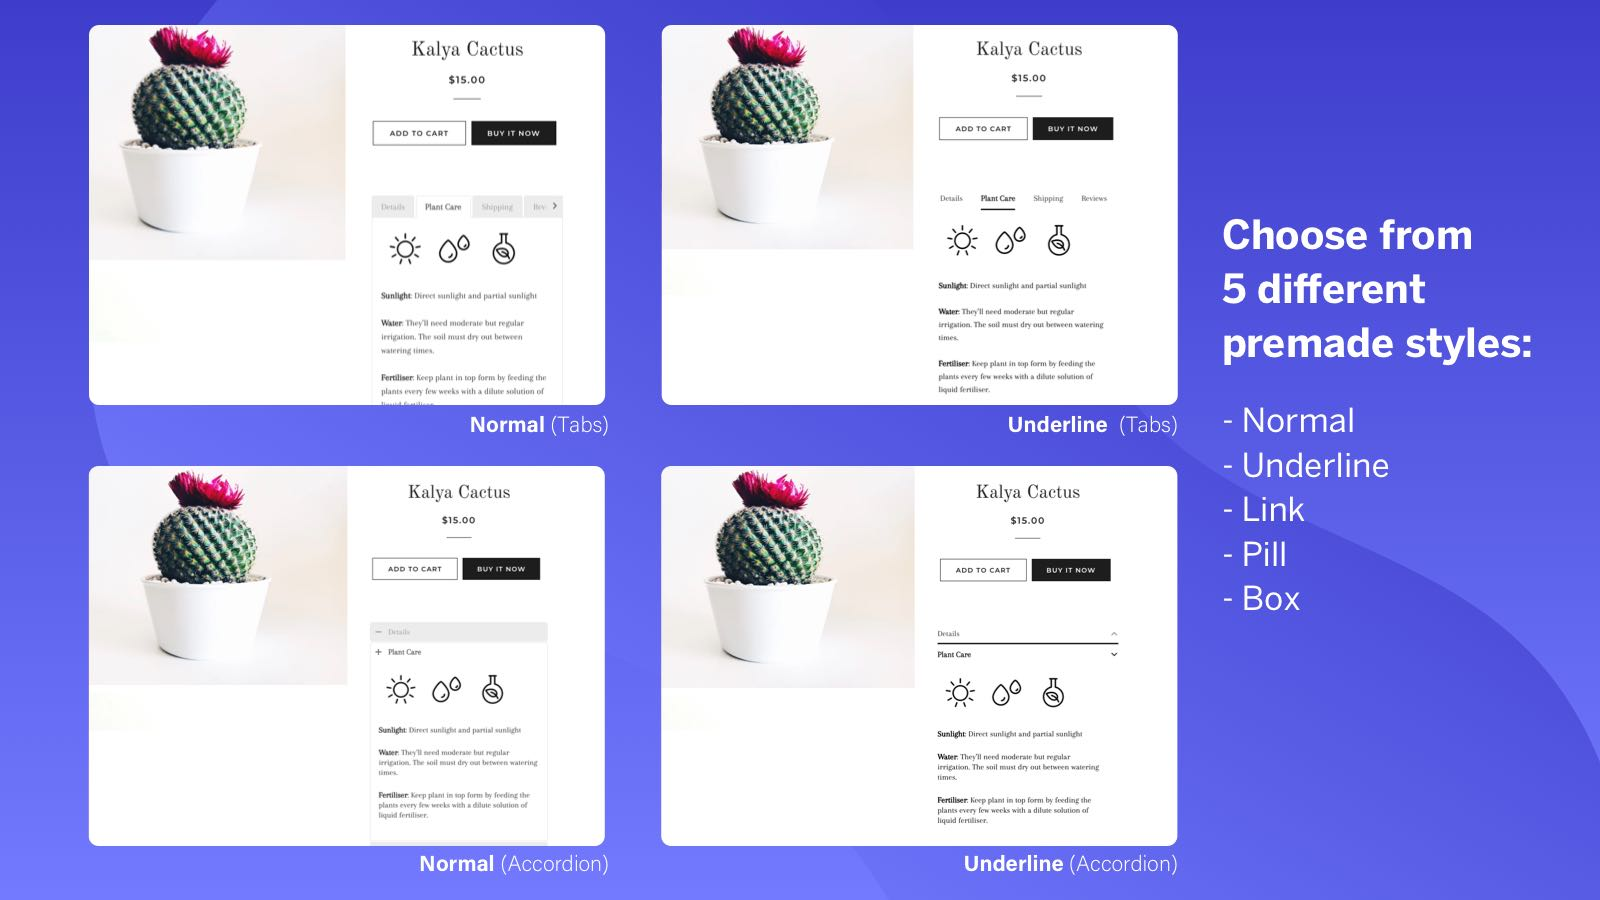 Choose from 5 different premade styles